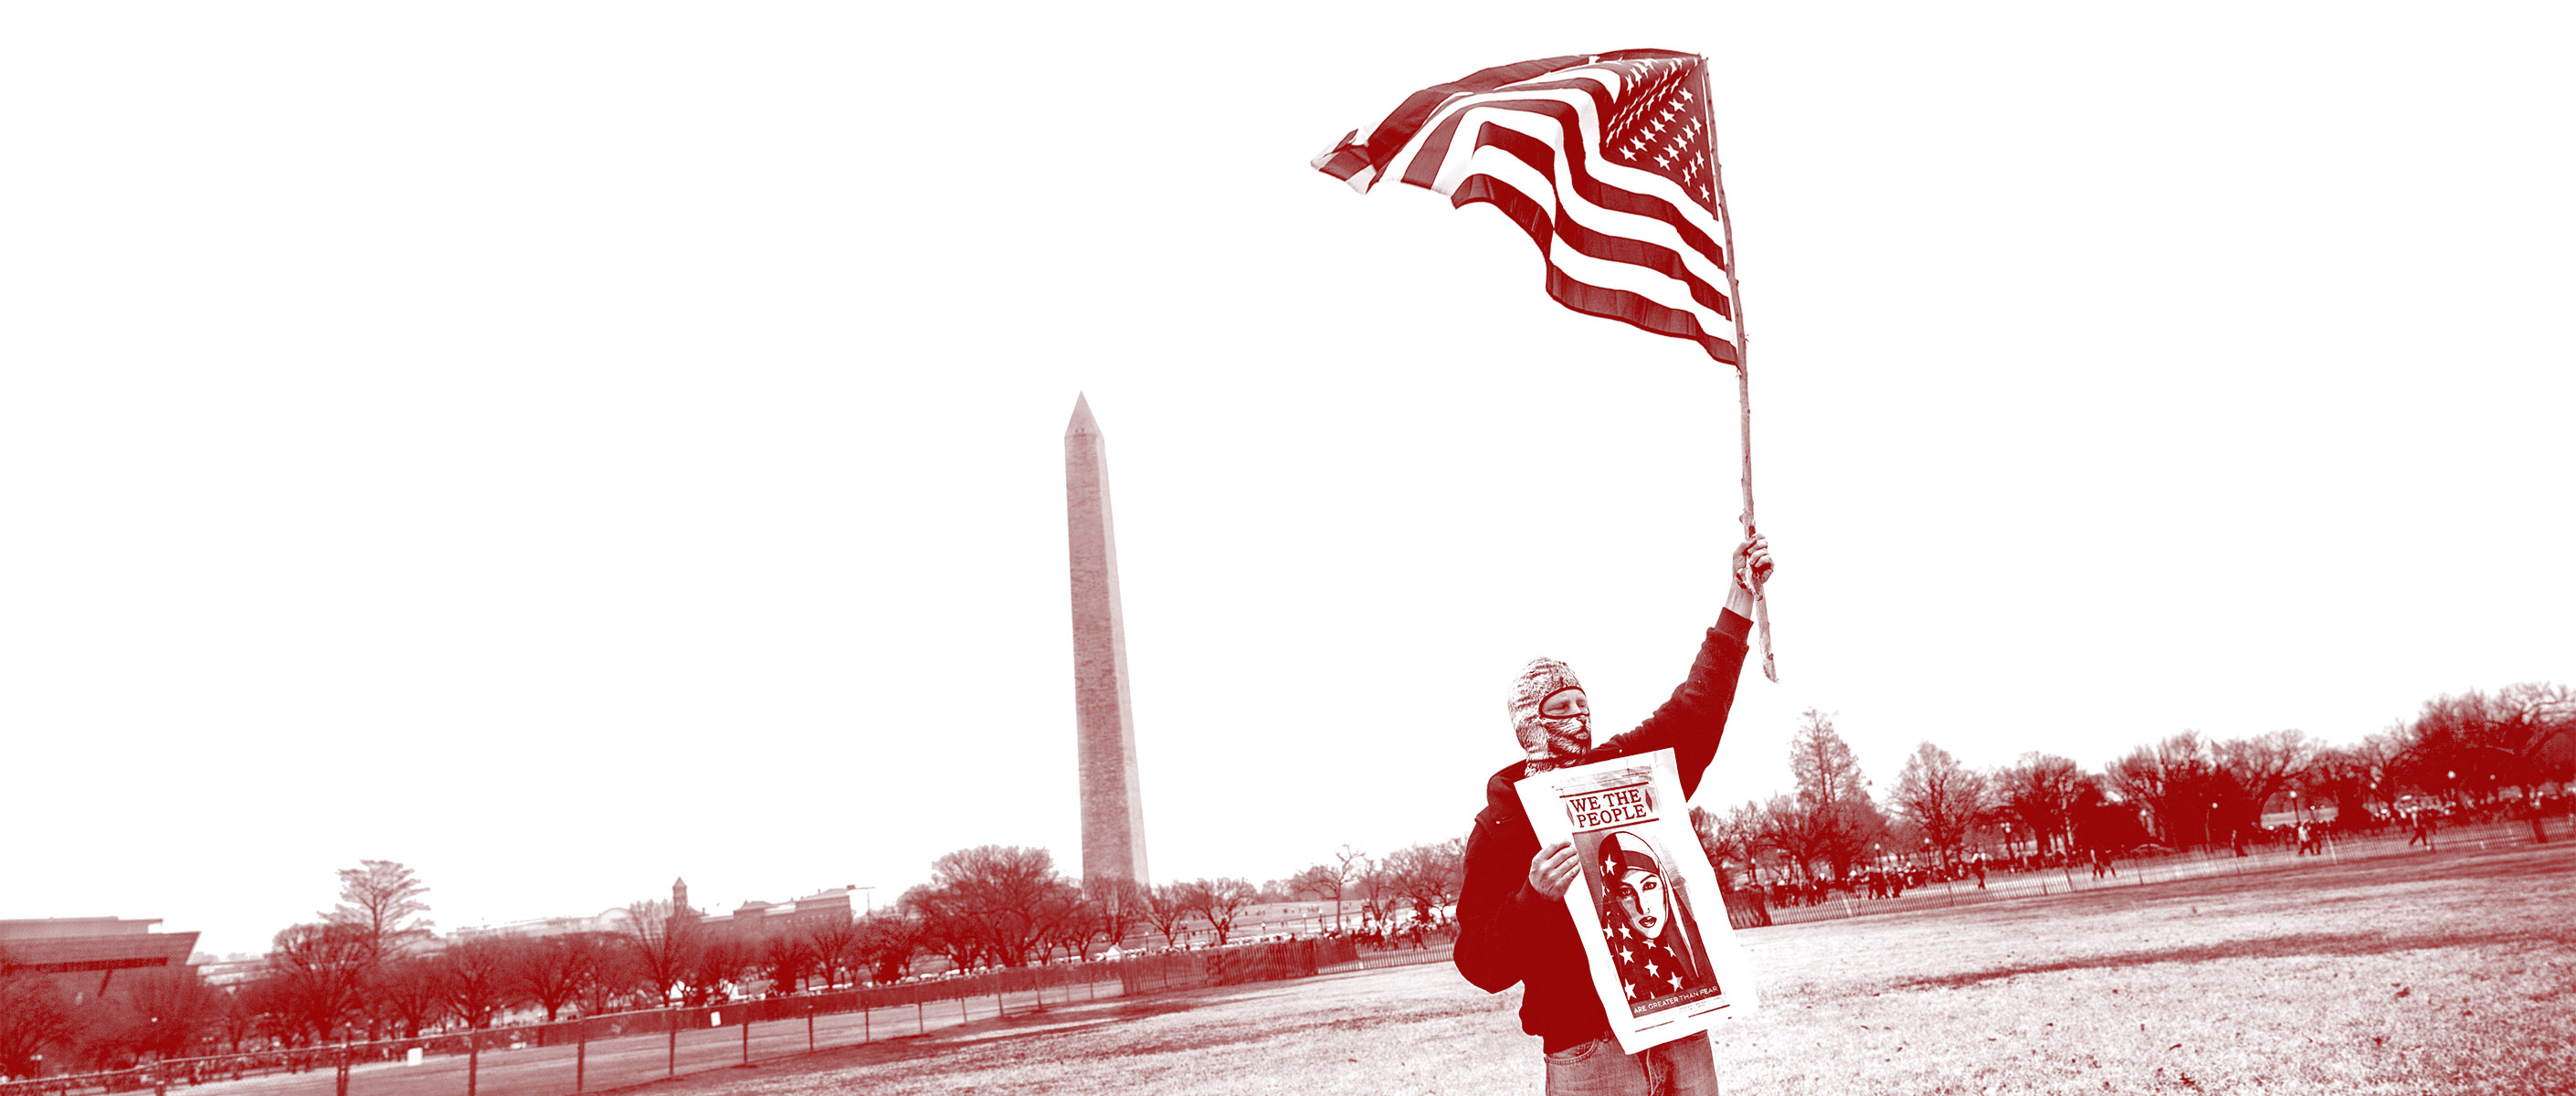 Man waves flag